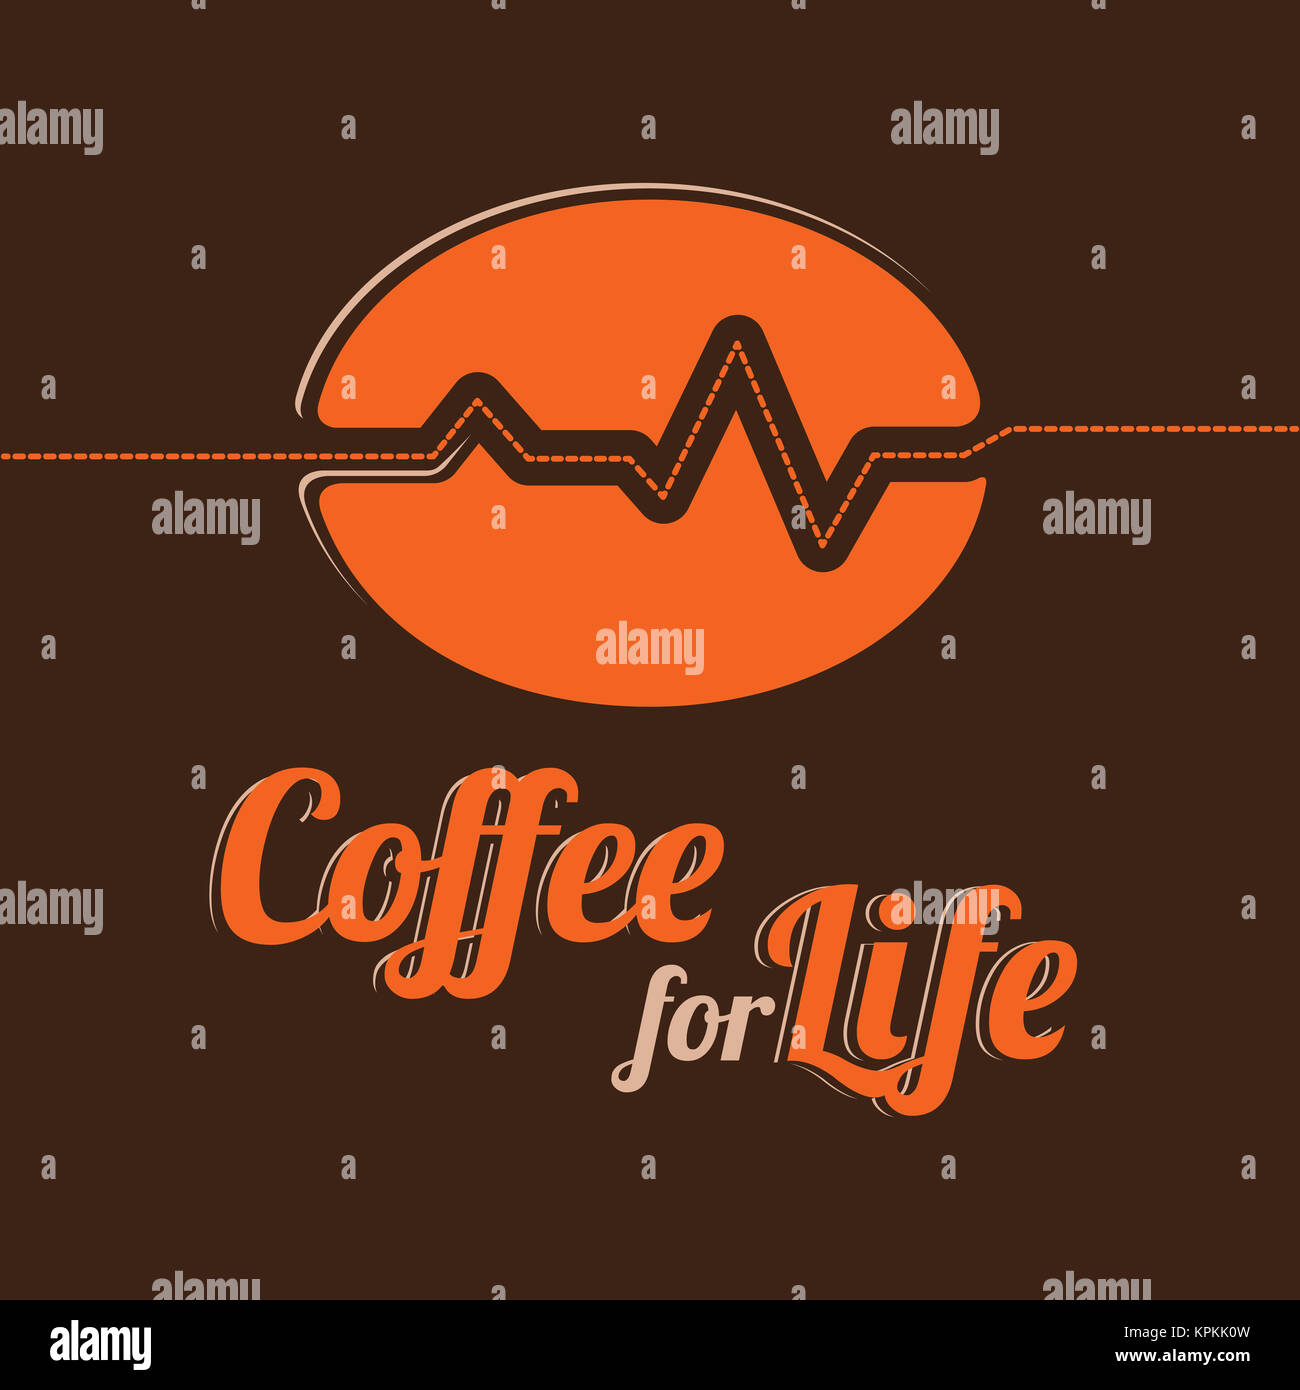 Coffee for Life Emblem. Stylized Coffee Bean and a Line in the Form of a Cardiogram. Text Design. - Stock Image